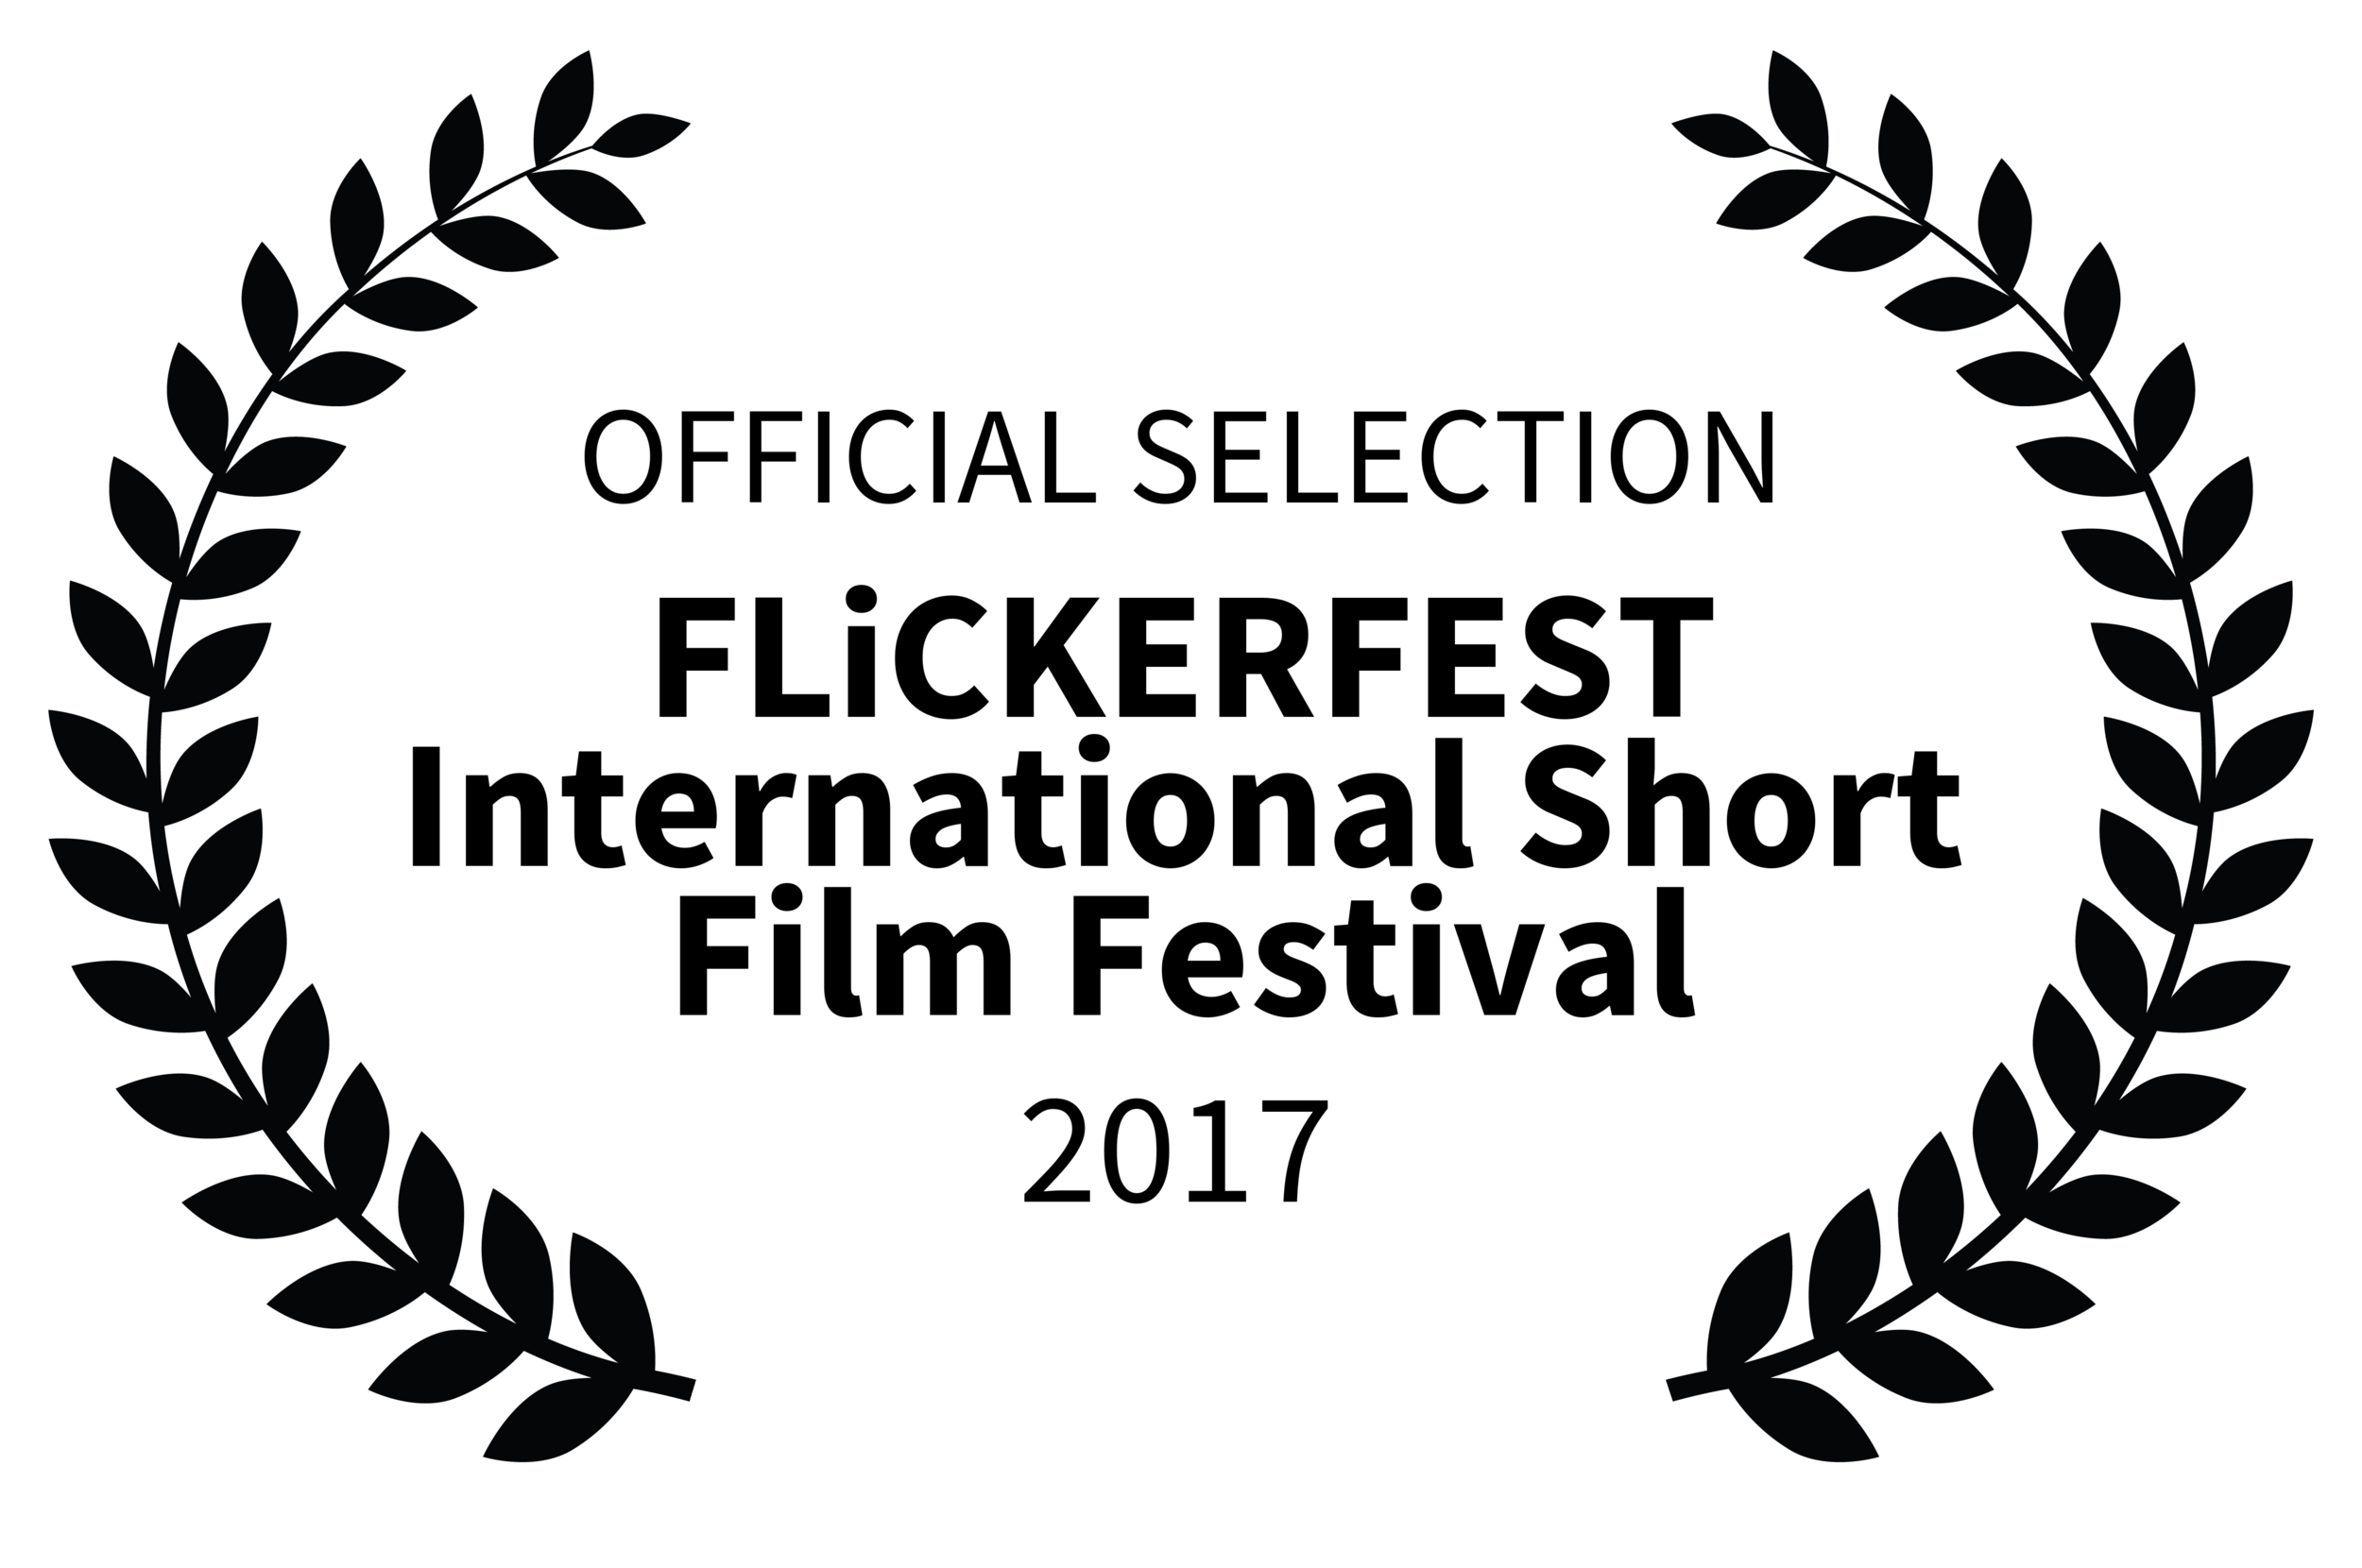 Laurels - Official Selection FLiCKERFEST International Short Film Festival 2017 (black on white).png